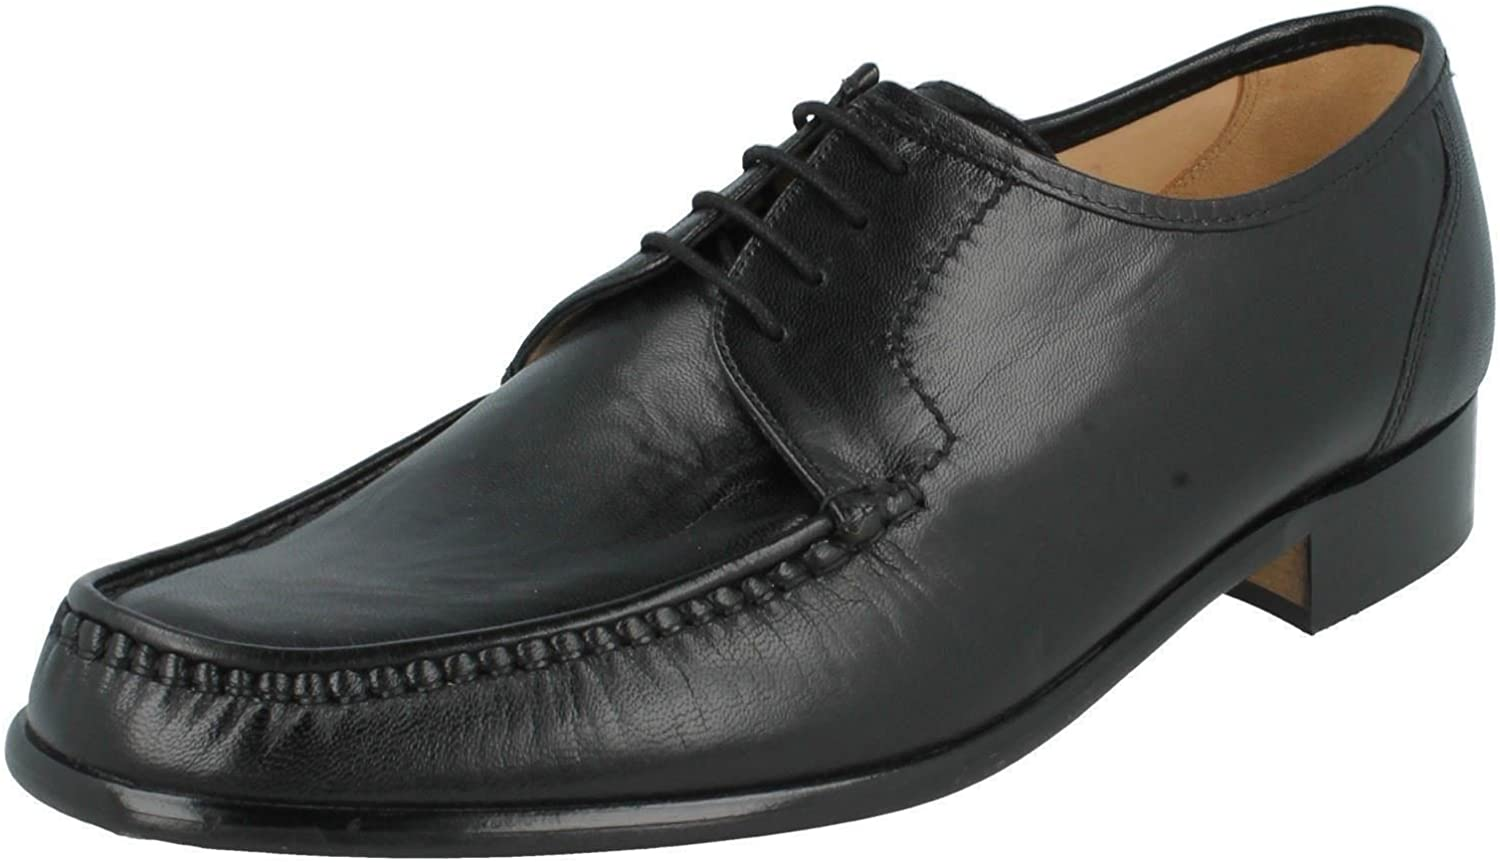 Mens Grenson Formal shoes Fitting G Style - Crewe 33343-01